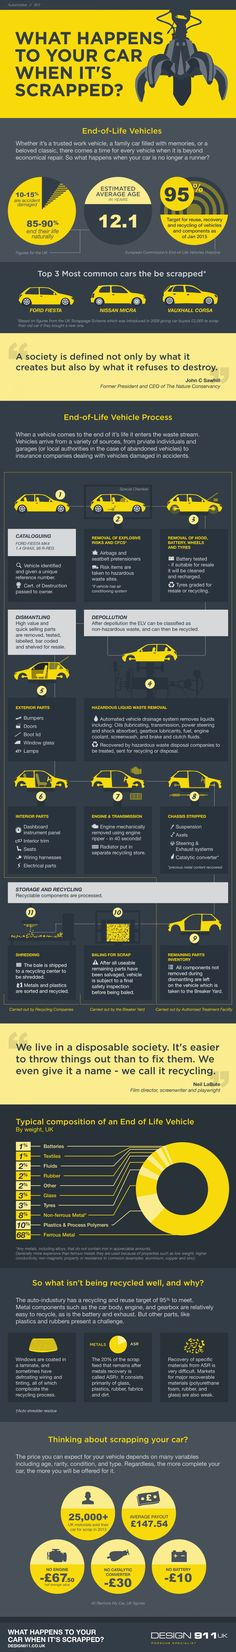 What Happens To Your Car When It's Scrapped? #infographic #Cars #Transportation